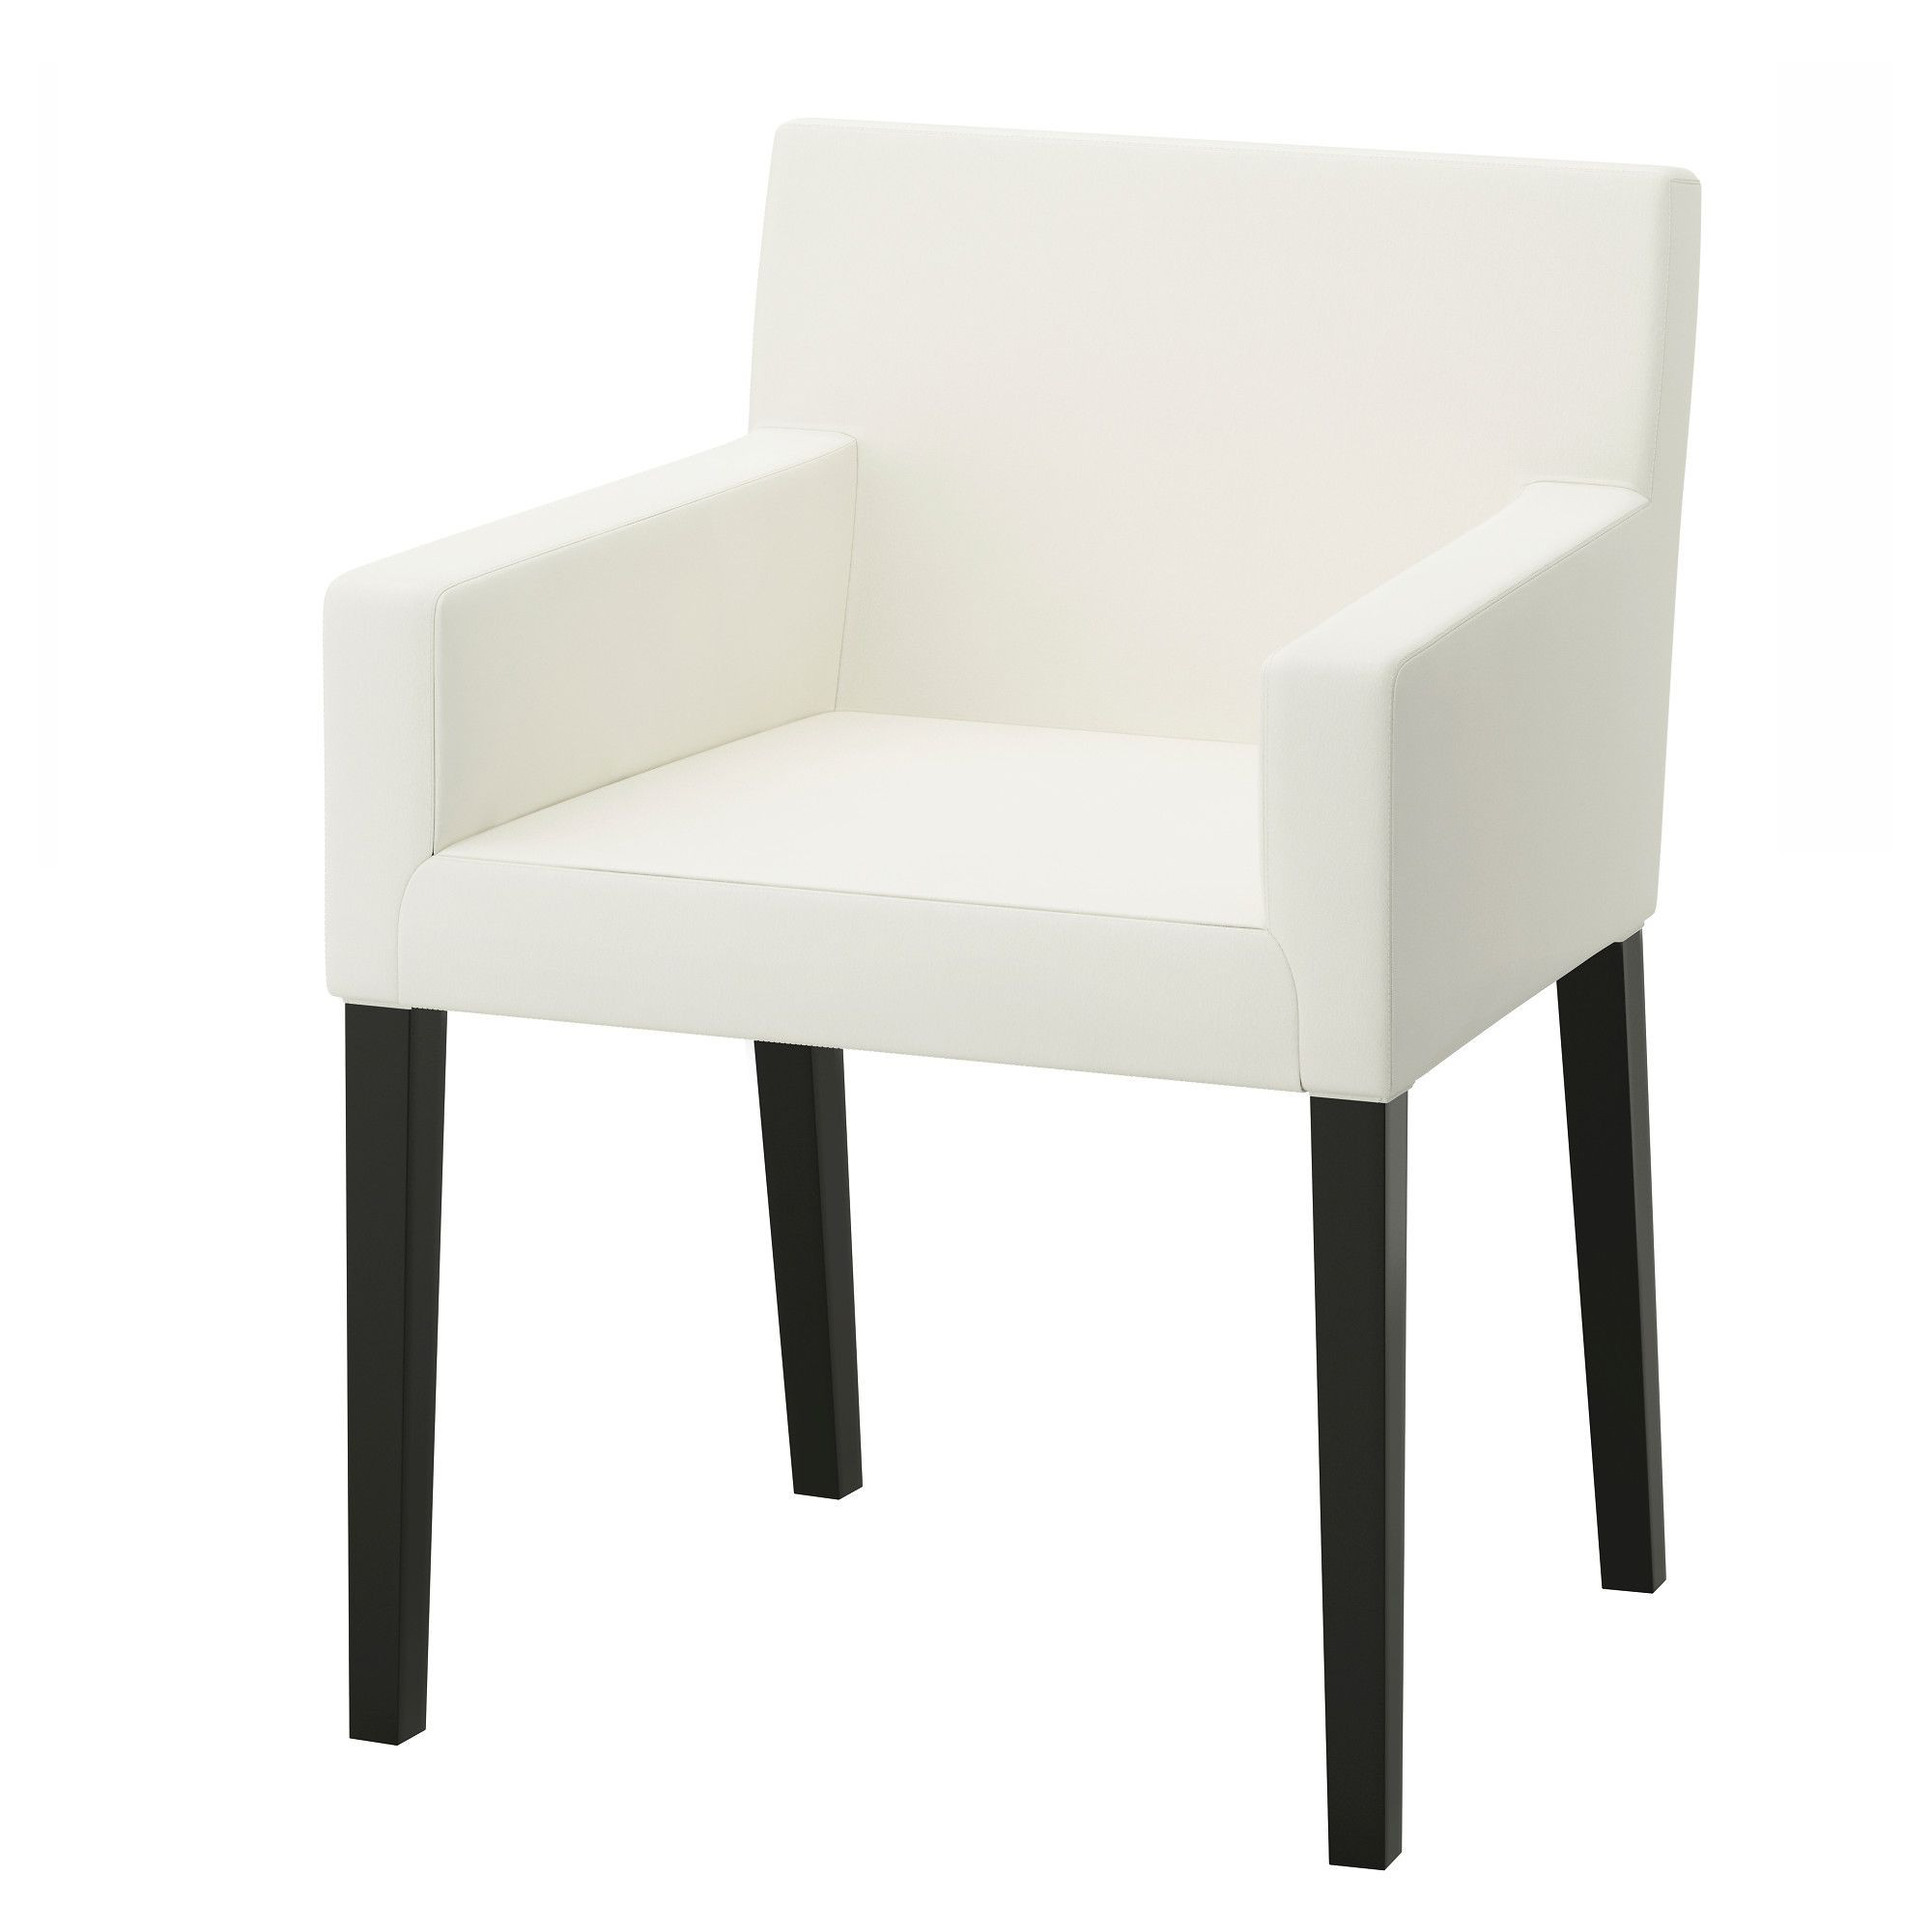 Ikea Nils Grey & White Armchairs